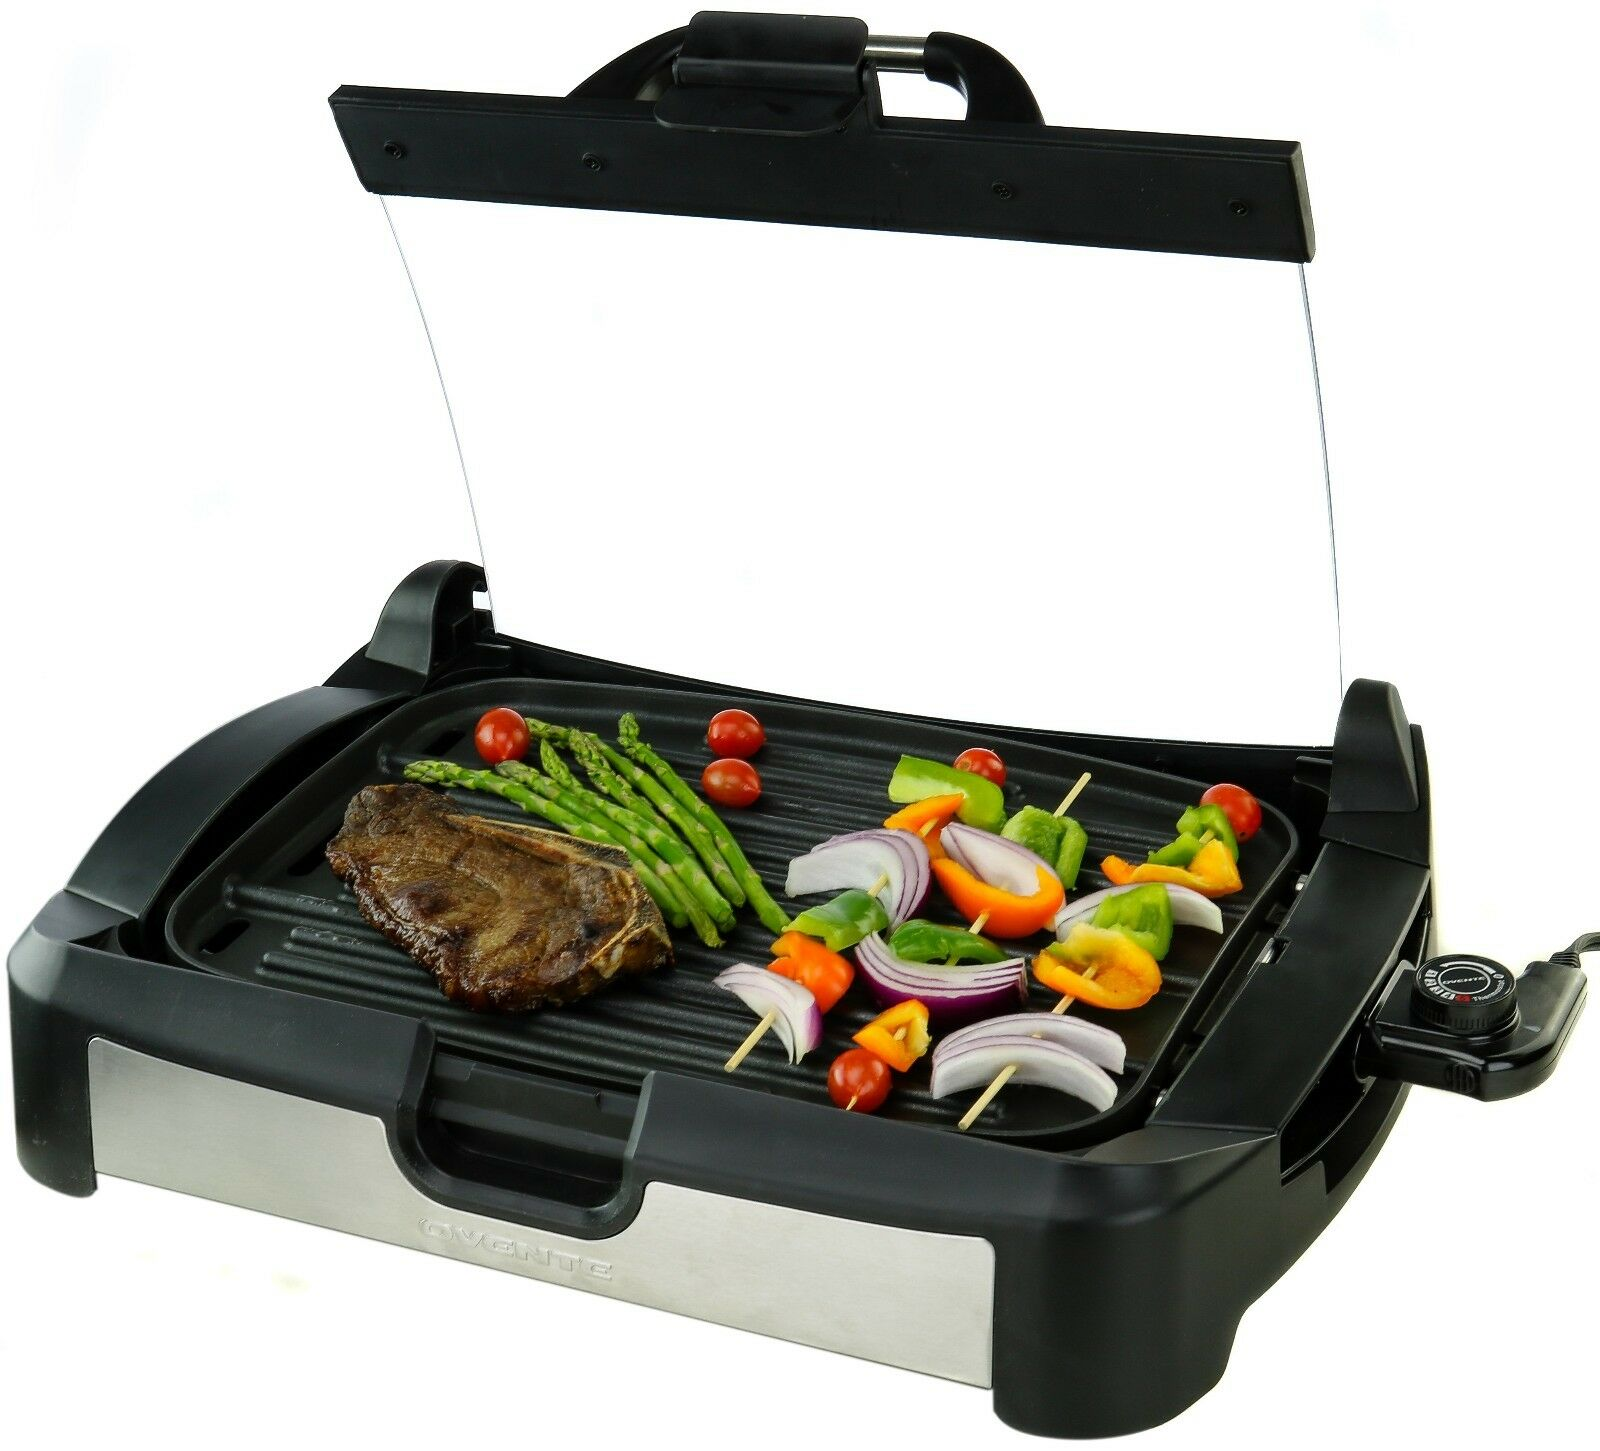 Ovente 1700 Watts Reversible Electric Grill and Griddle with